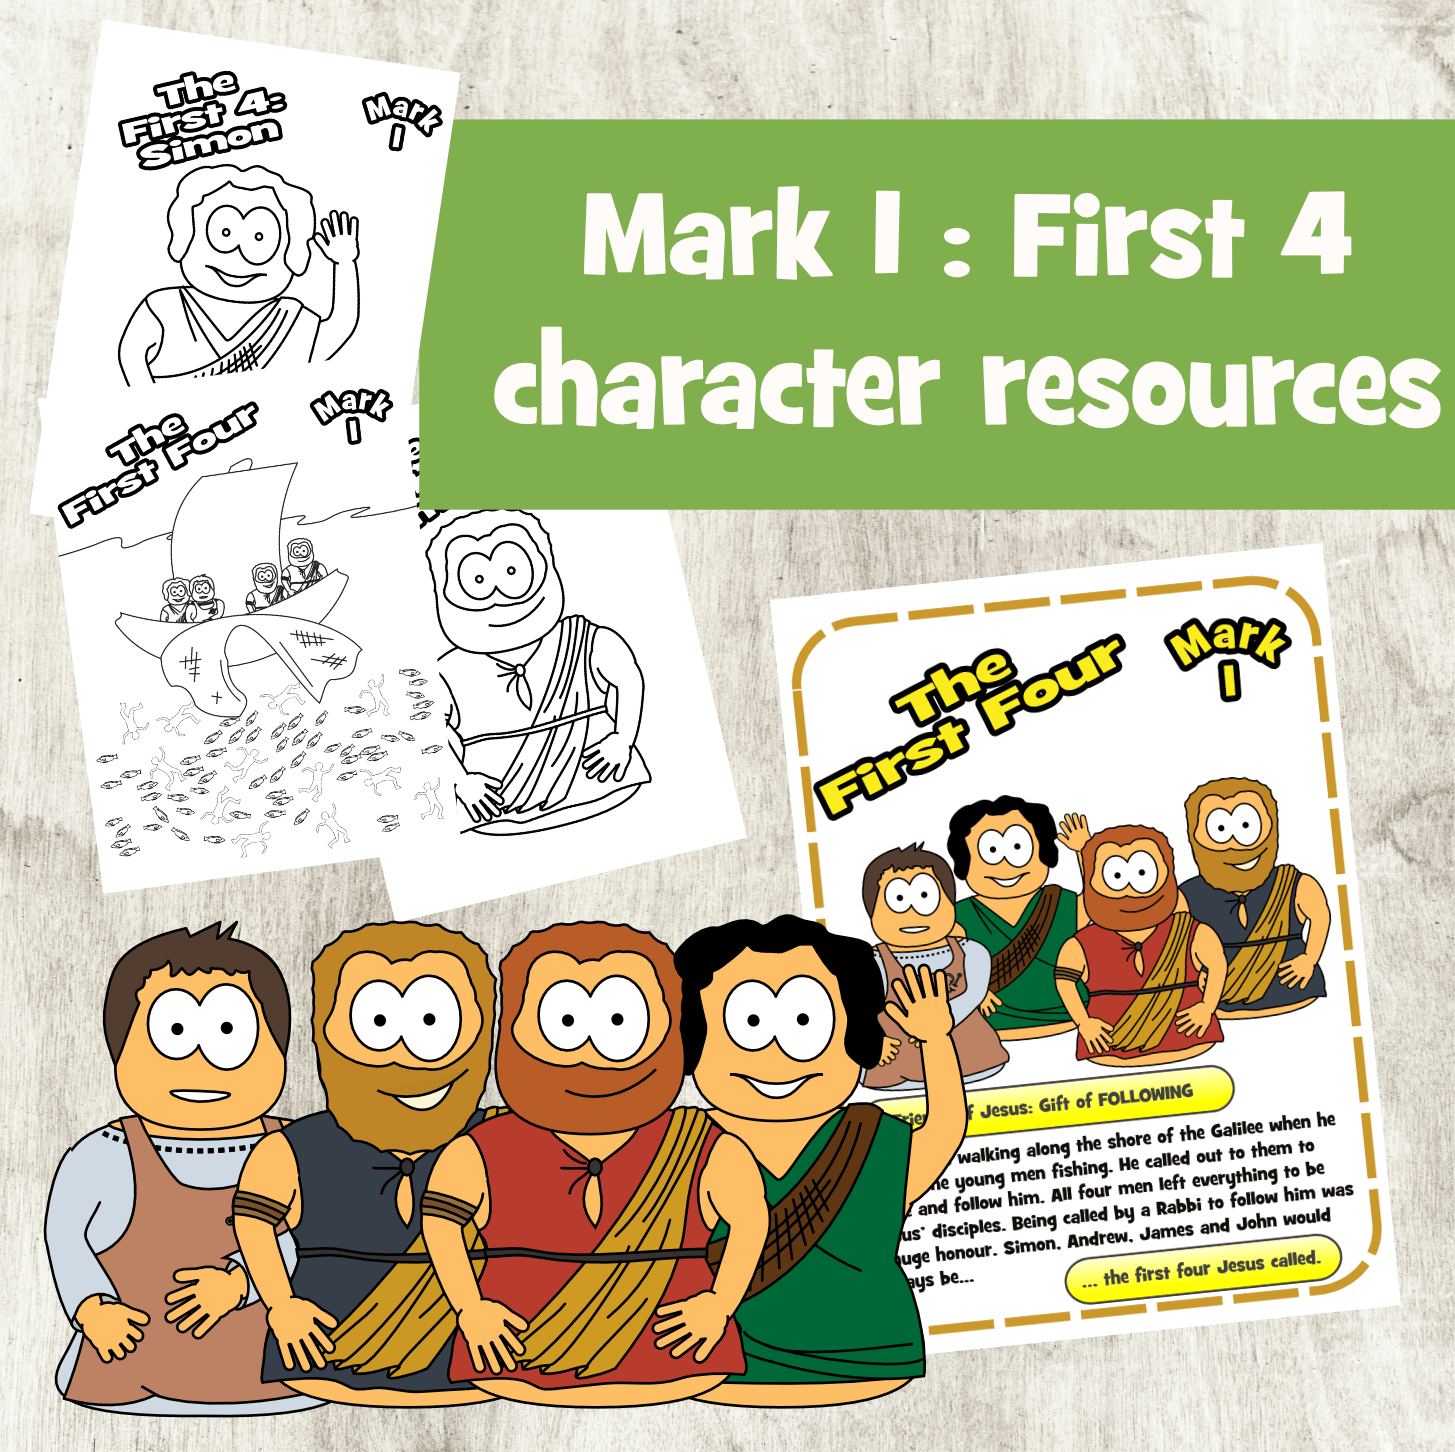 The first 4 Disciples (Mark 1)